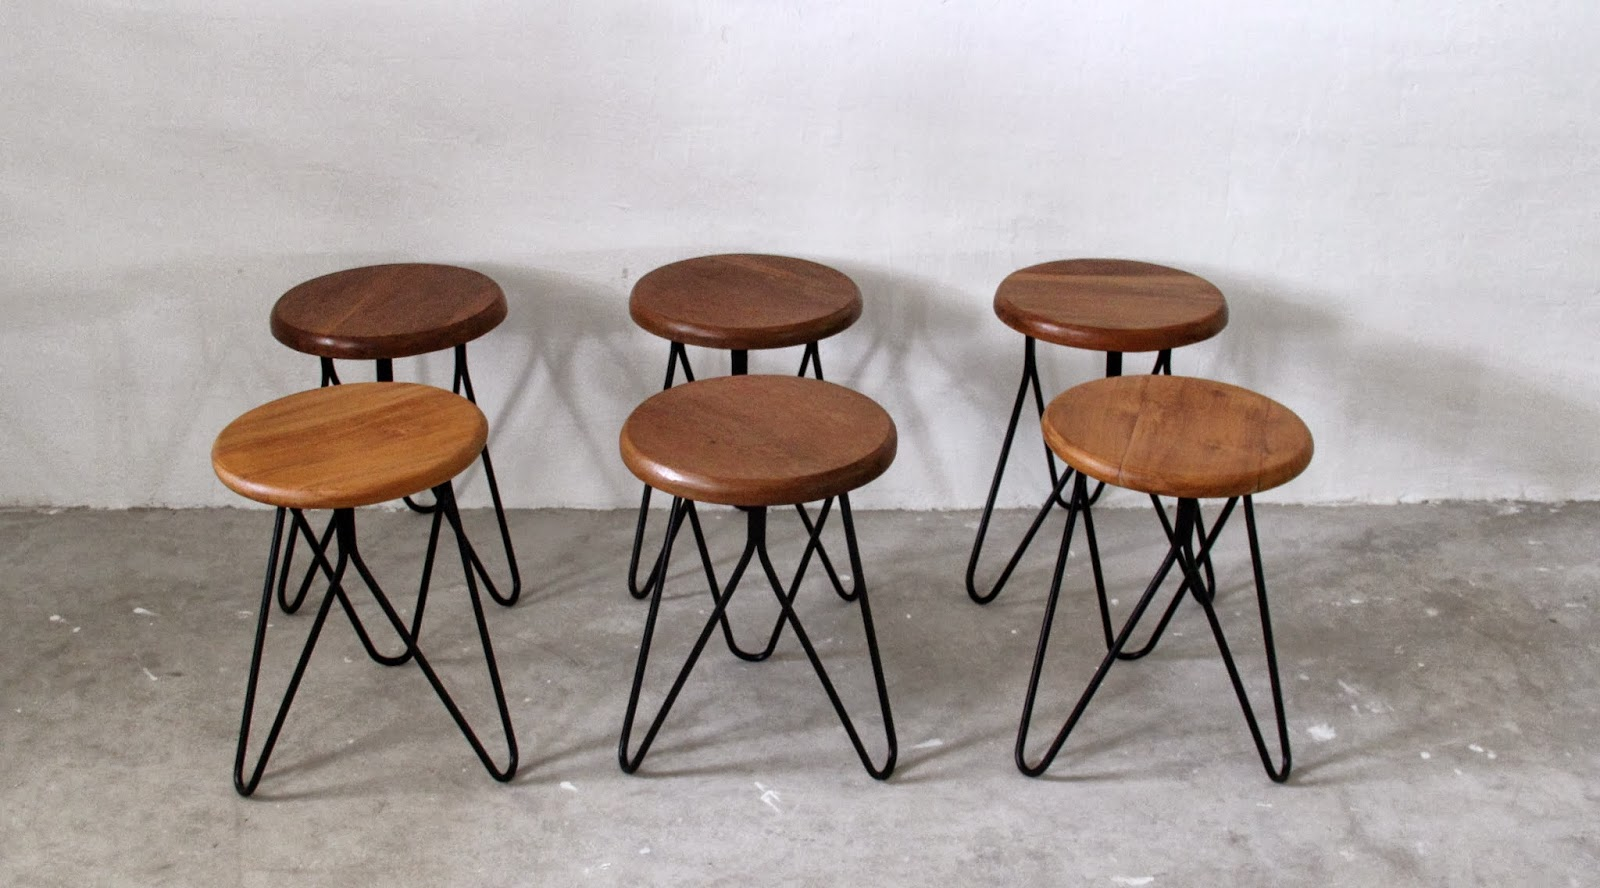 Vintage Inspired Stools With Hair Pin Legs.